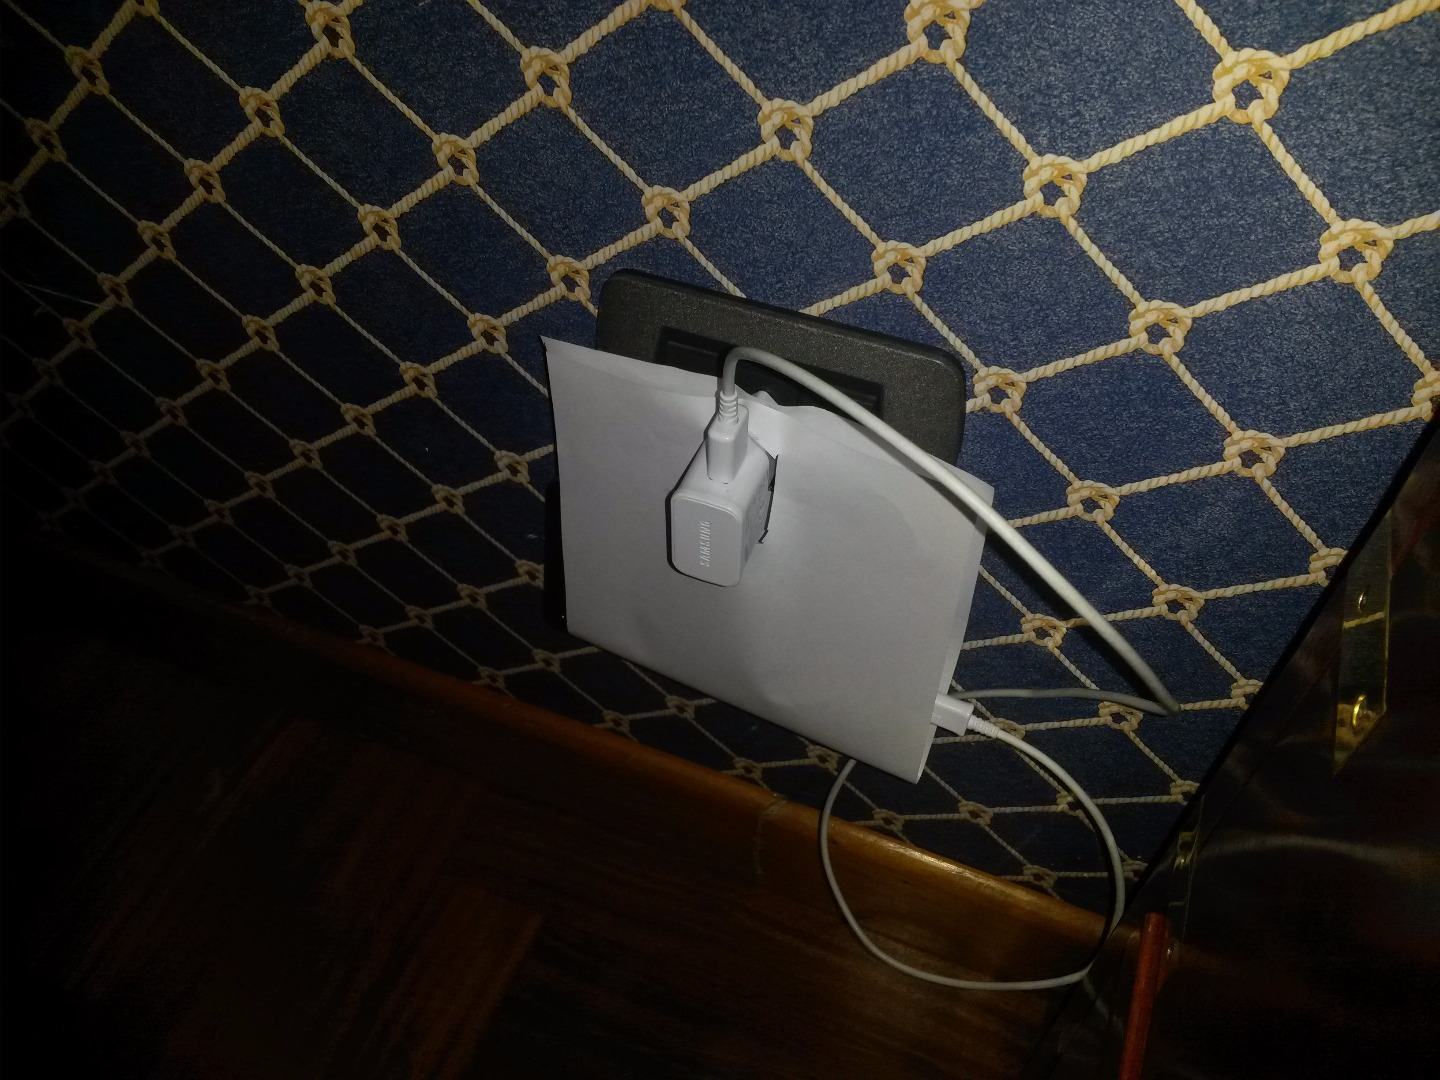 Phone Charger Holder With A Paper Sheet